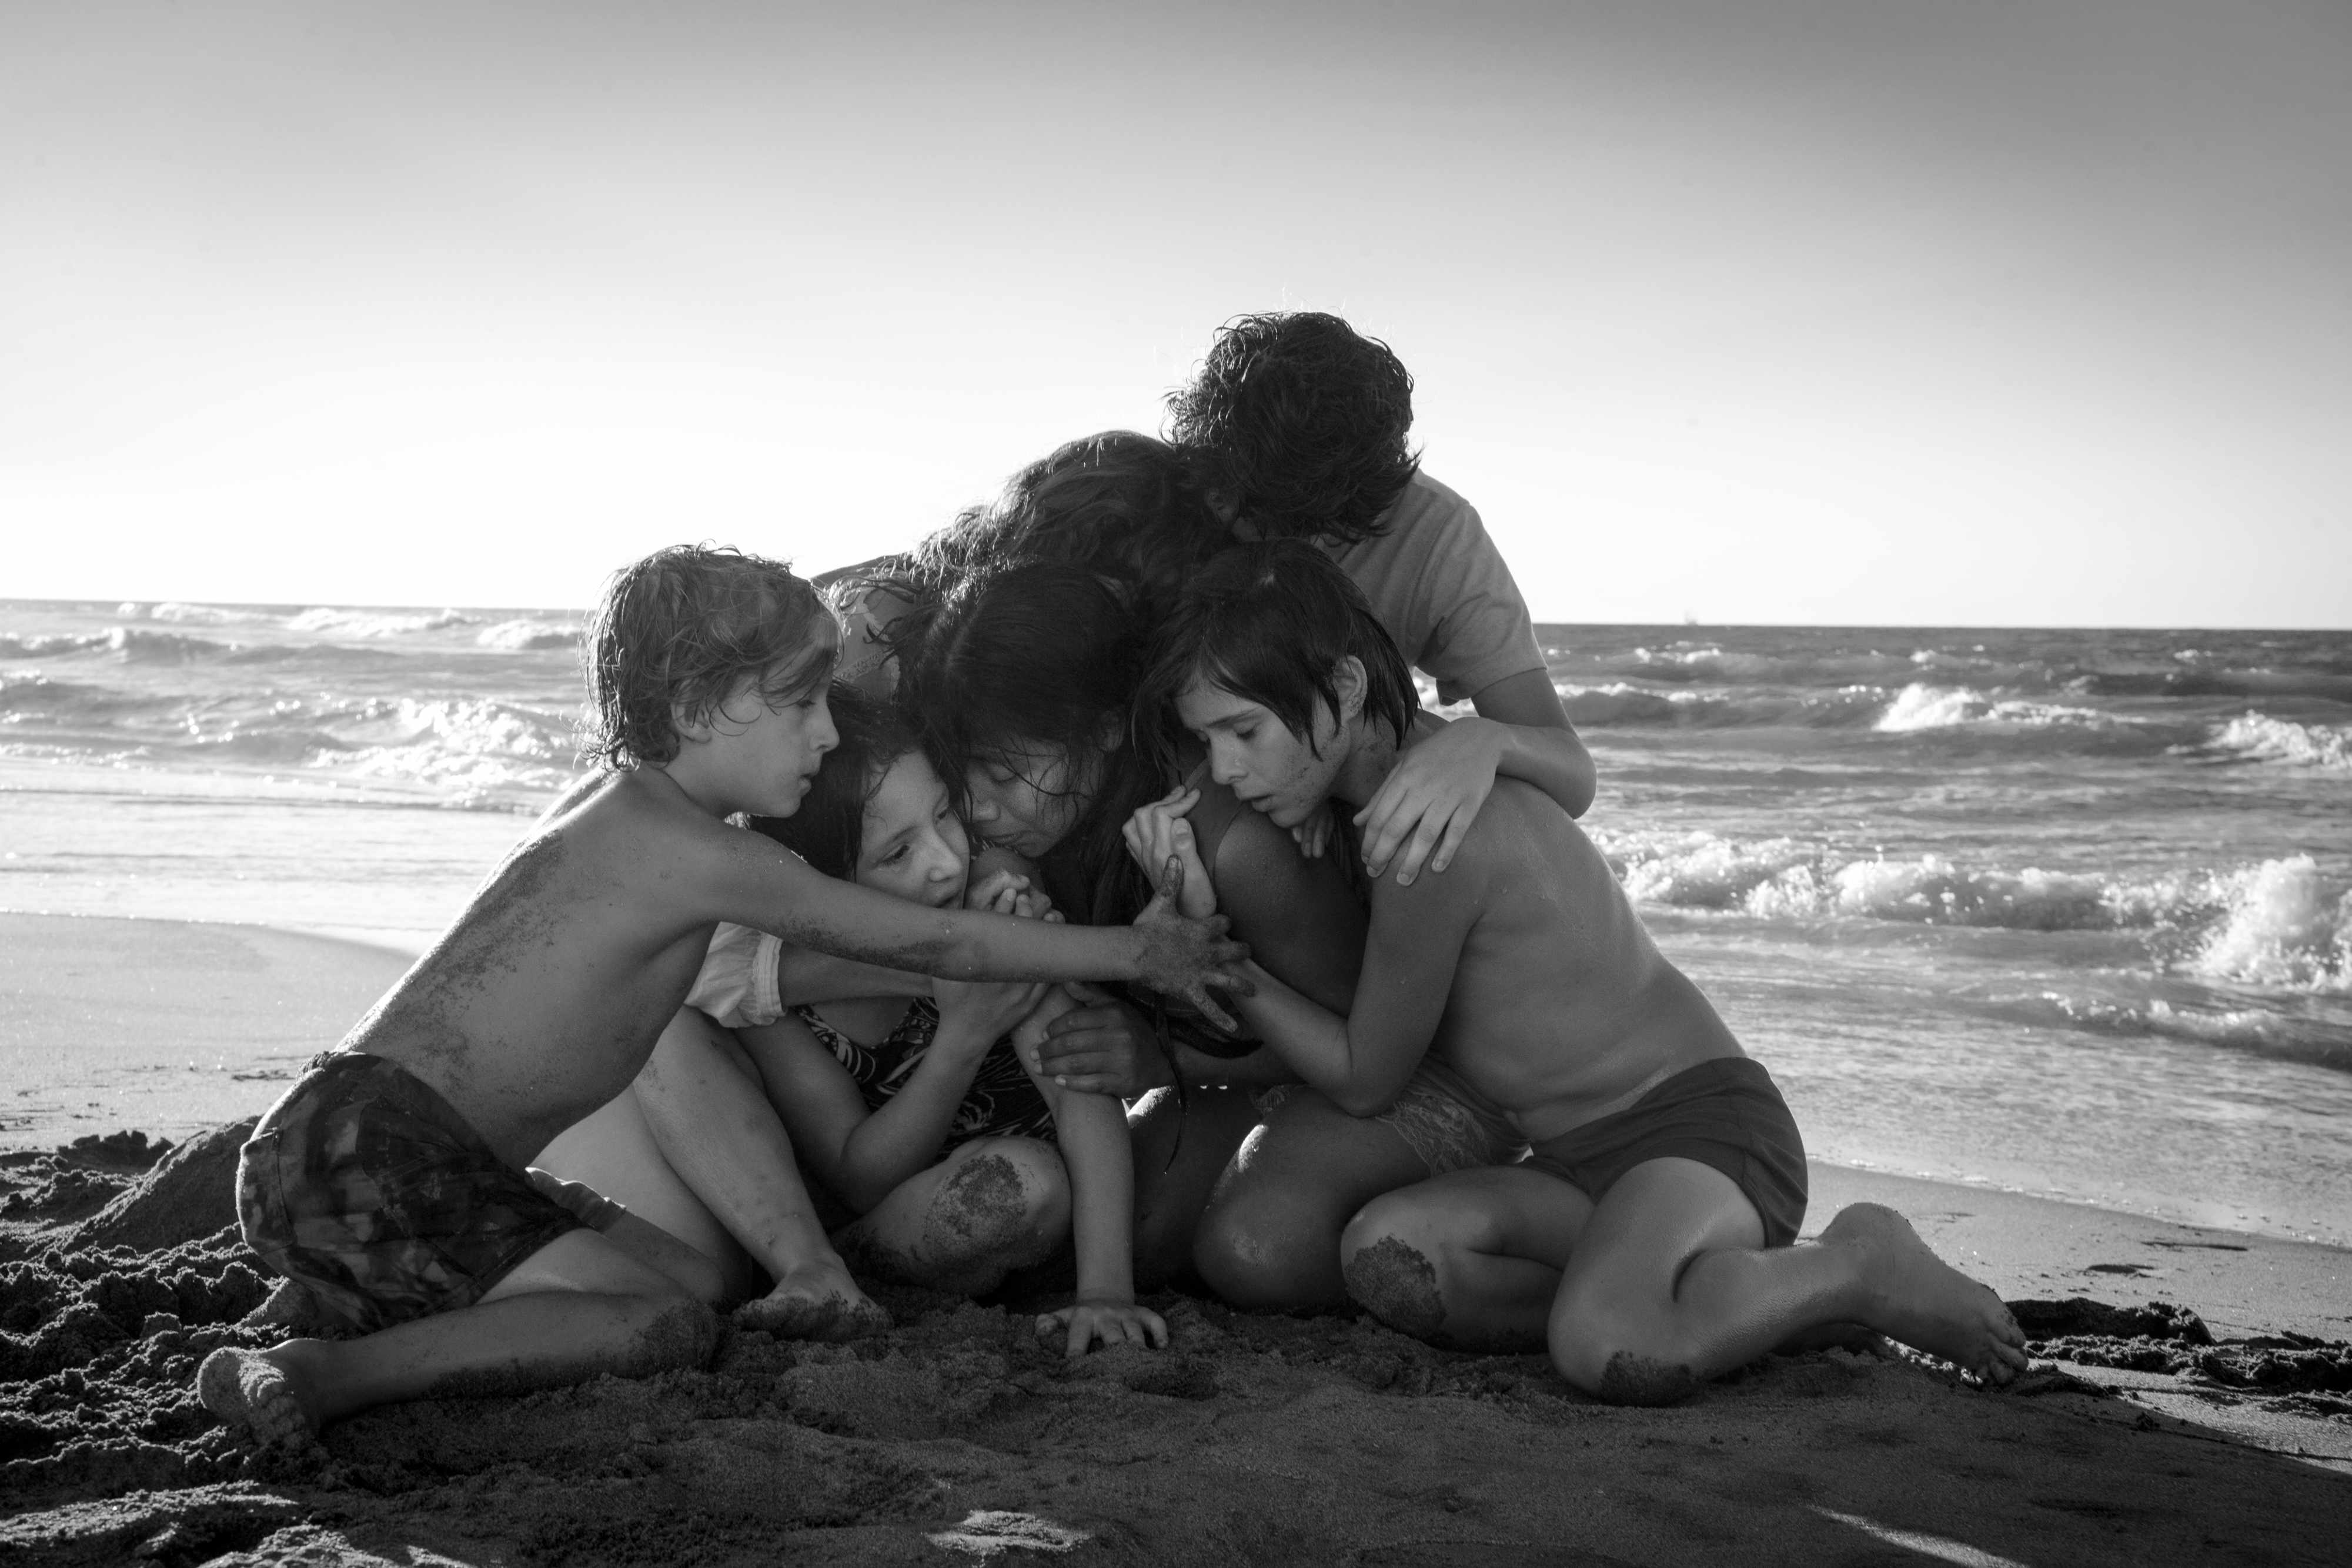 (L to R) Marco Graf as Pepe, Daniela Demesa as Sofi, Yalitza Aparicio as Cleo, Marina De Tavira as Sofia, Diego Cortina Autrey as Toño, Carlos Peralta Jacobson as Paco in Roma, written and directed by Alfonso Cuarón. 